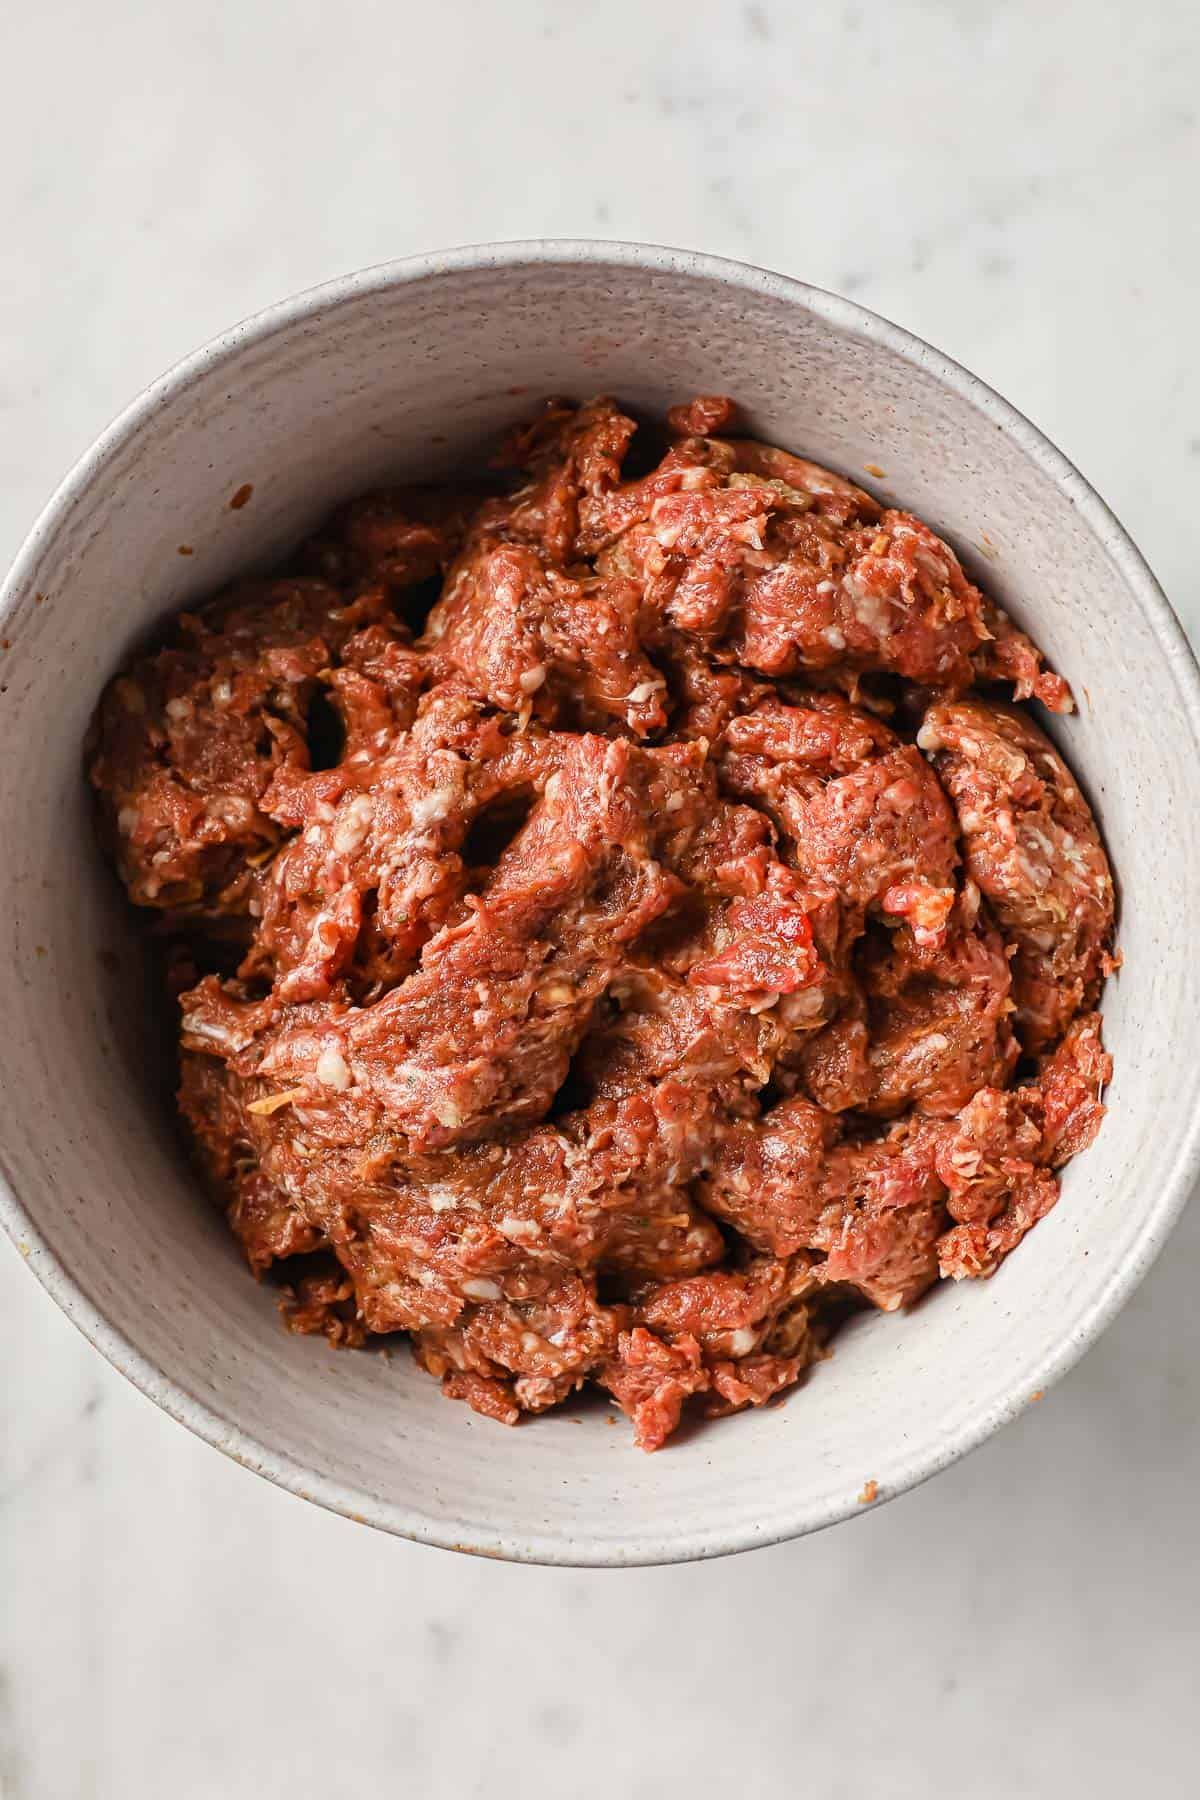 ingredients for meatloaf - beef, sausage, tomato paste, eggs, onion soup, garlic all mixed up